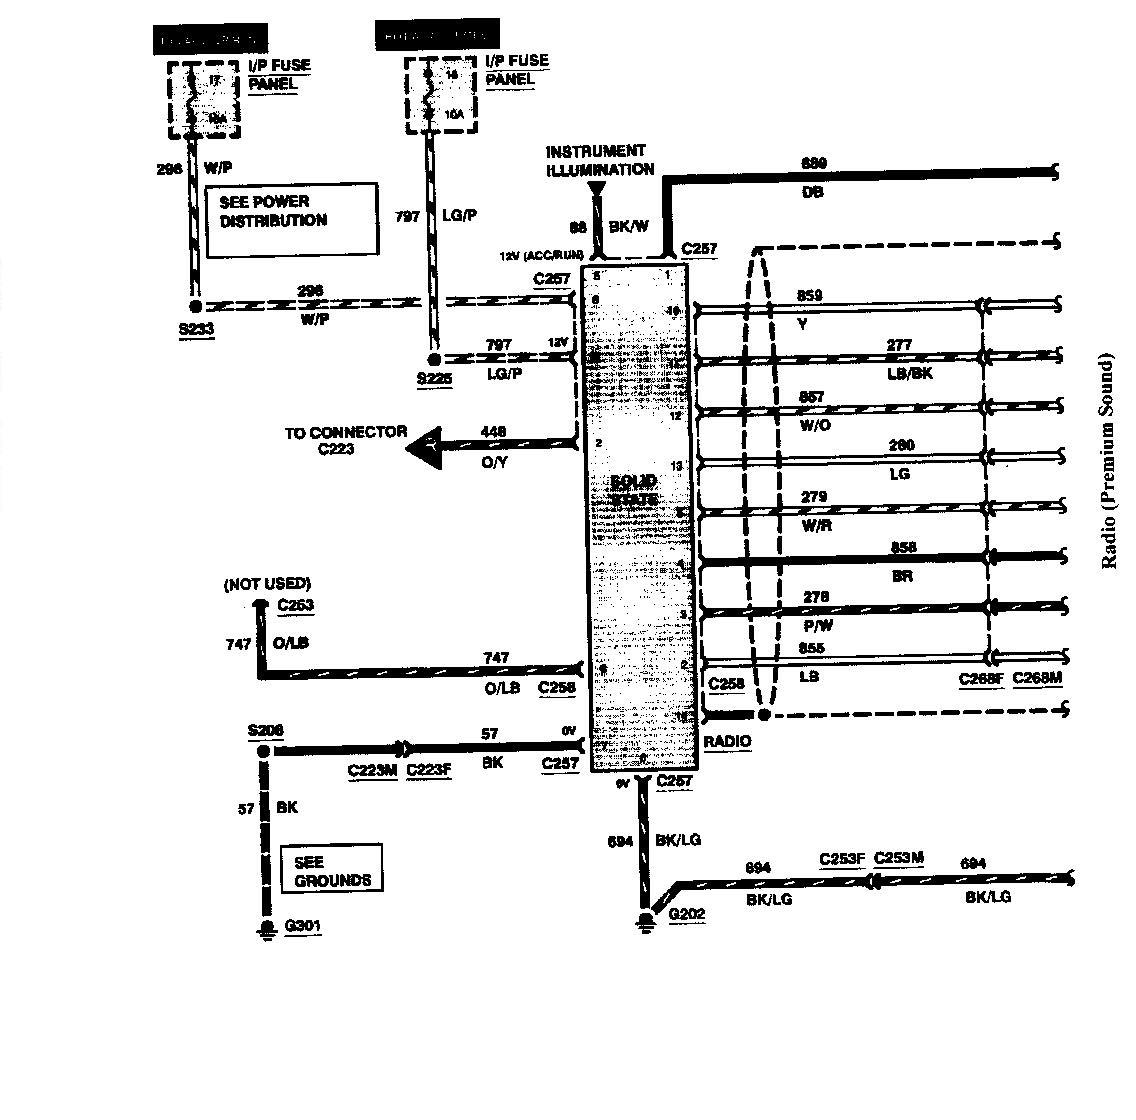 95Mark8 Premium Sound Wiring lincoln ls stereo wiring diagram ls engine relay box diagram 98 lincoln town car radio wiring diagram at bakdesigns.co